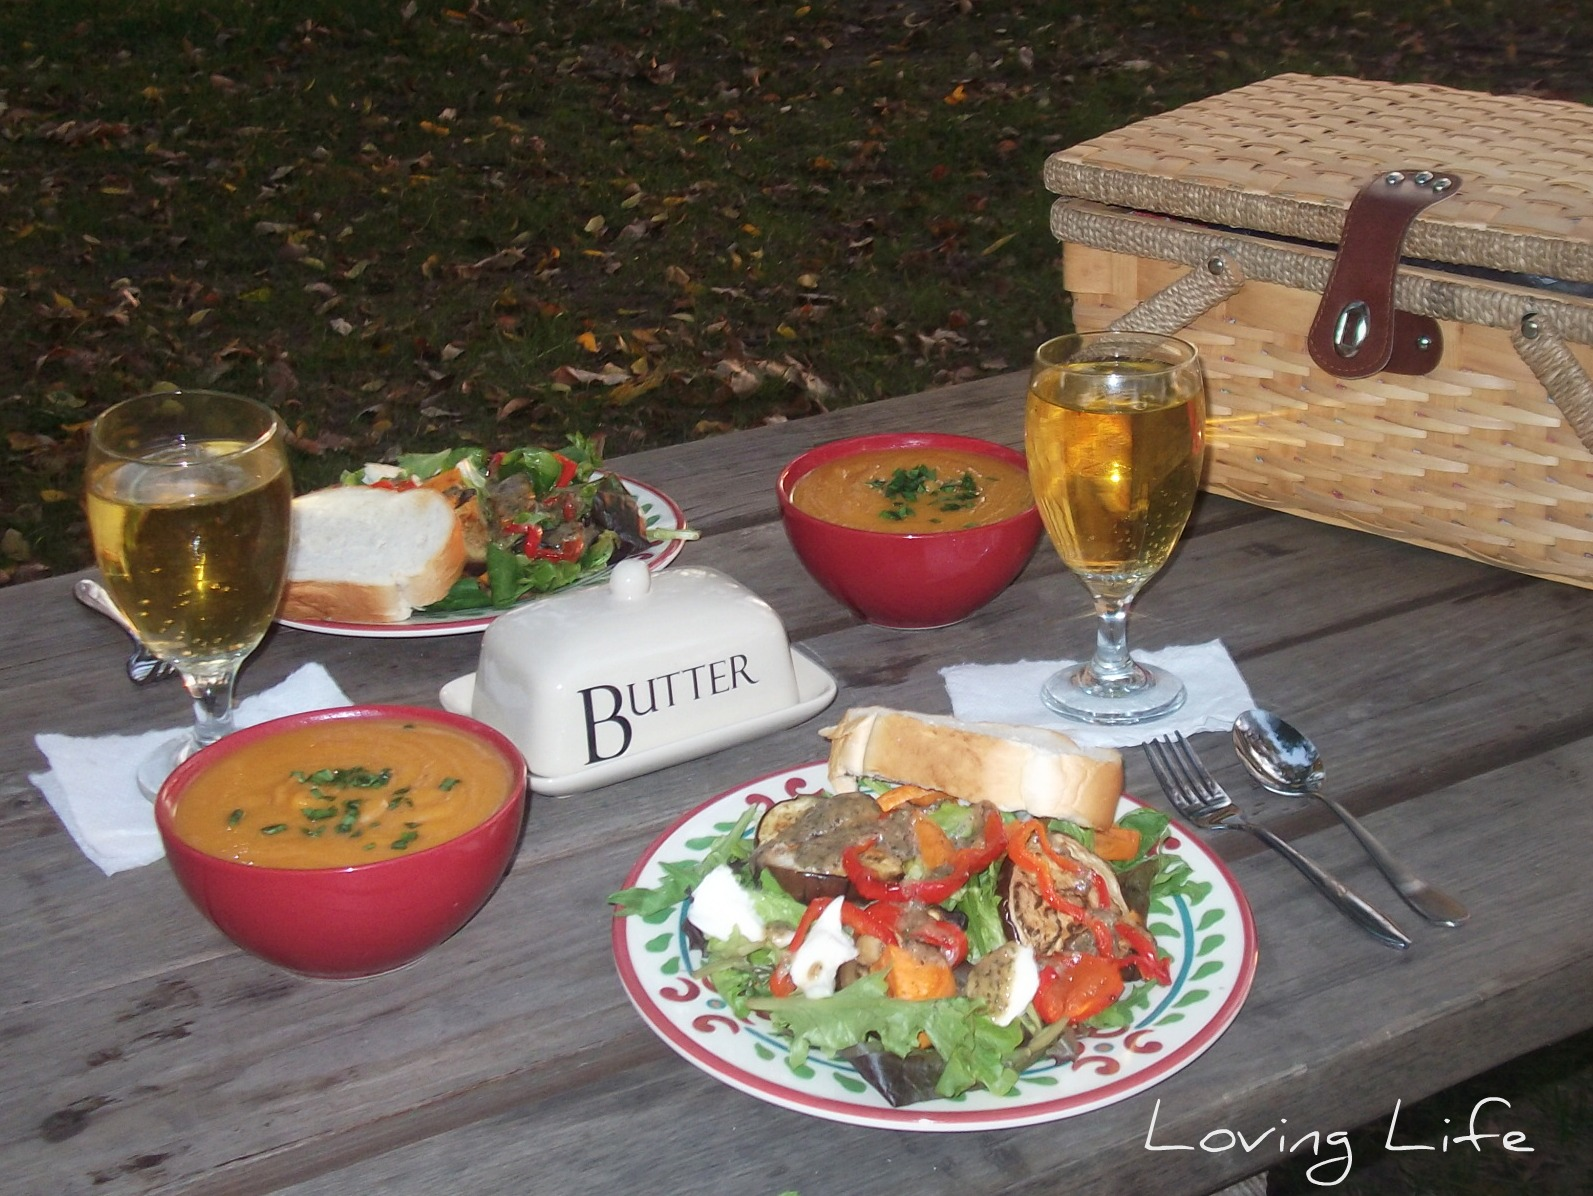 Loving Life: Recipes from our Indian Summer Picnic